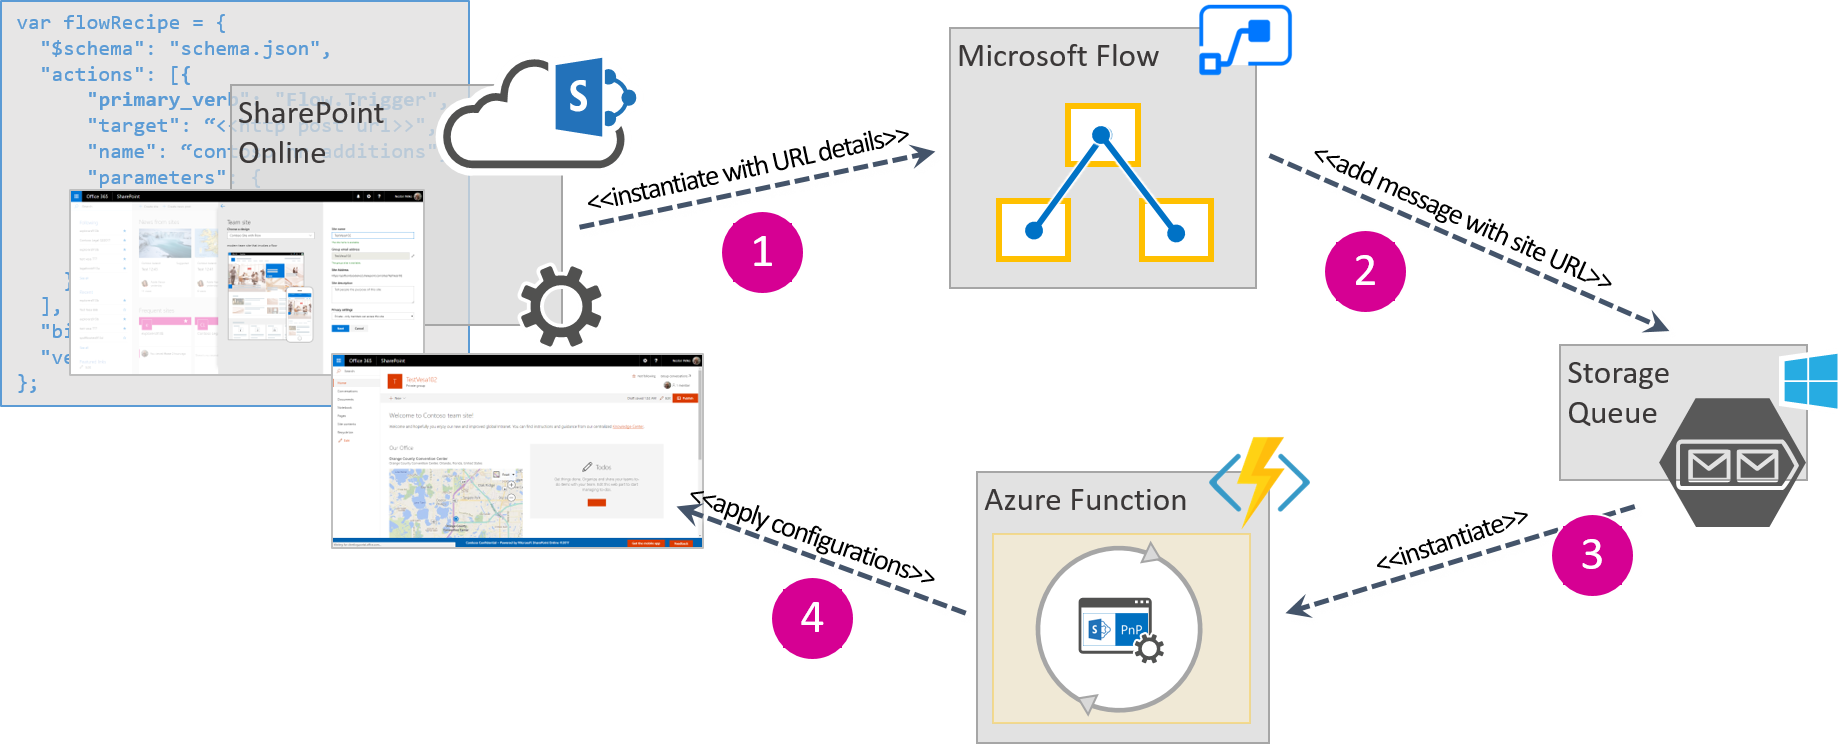 Process of triggering a Microsoft Flow